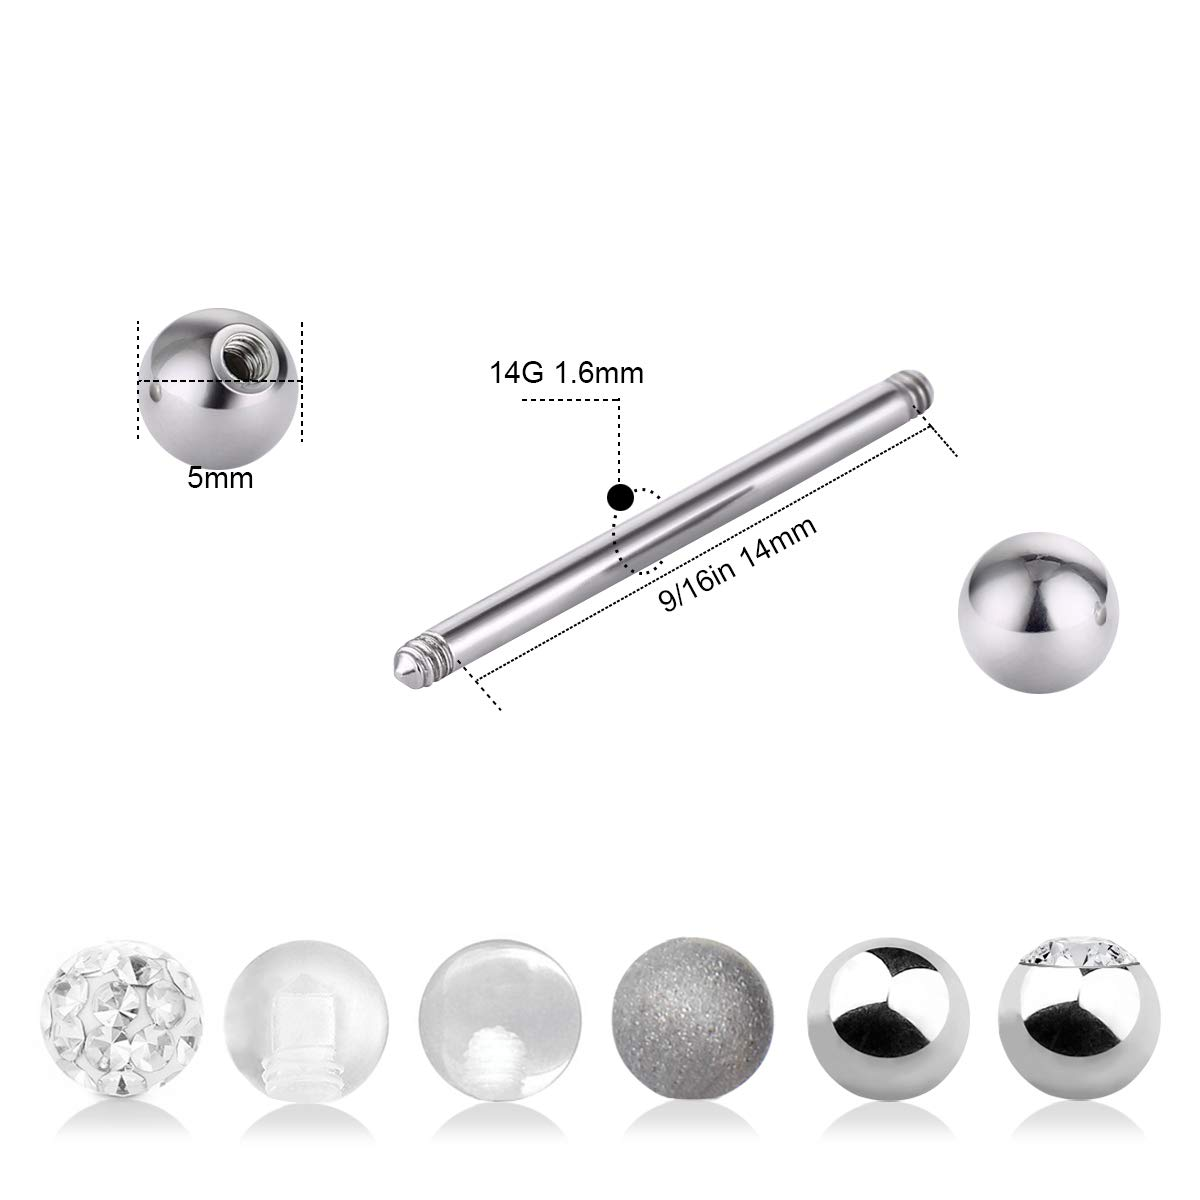 CrazyPiercing 12Pcs Stainless Steel Tongue Ring Barbell Retainer Nipplerings Body Piercing Jewelry 14G GYJ-TongueRing12P